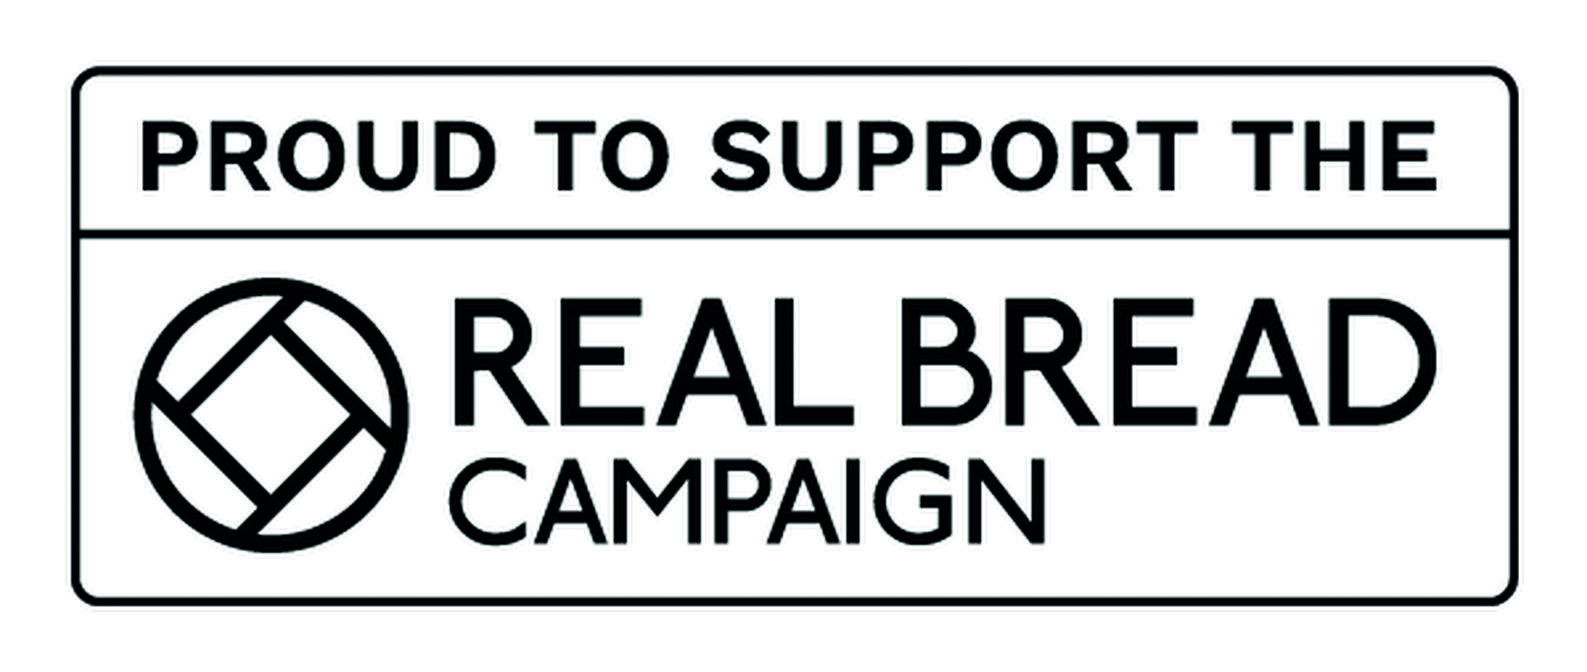 We are members of the Real Bread Campaign